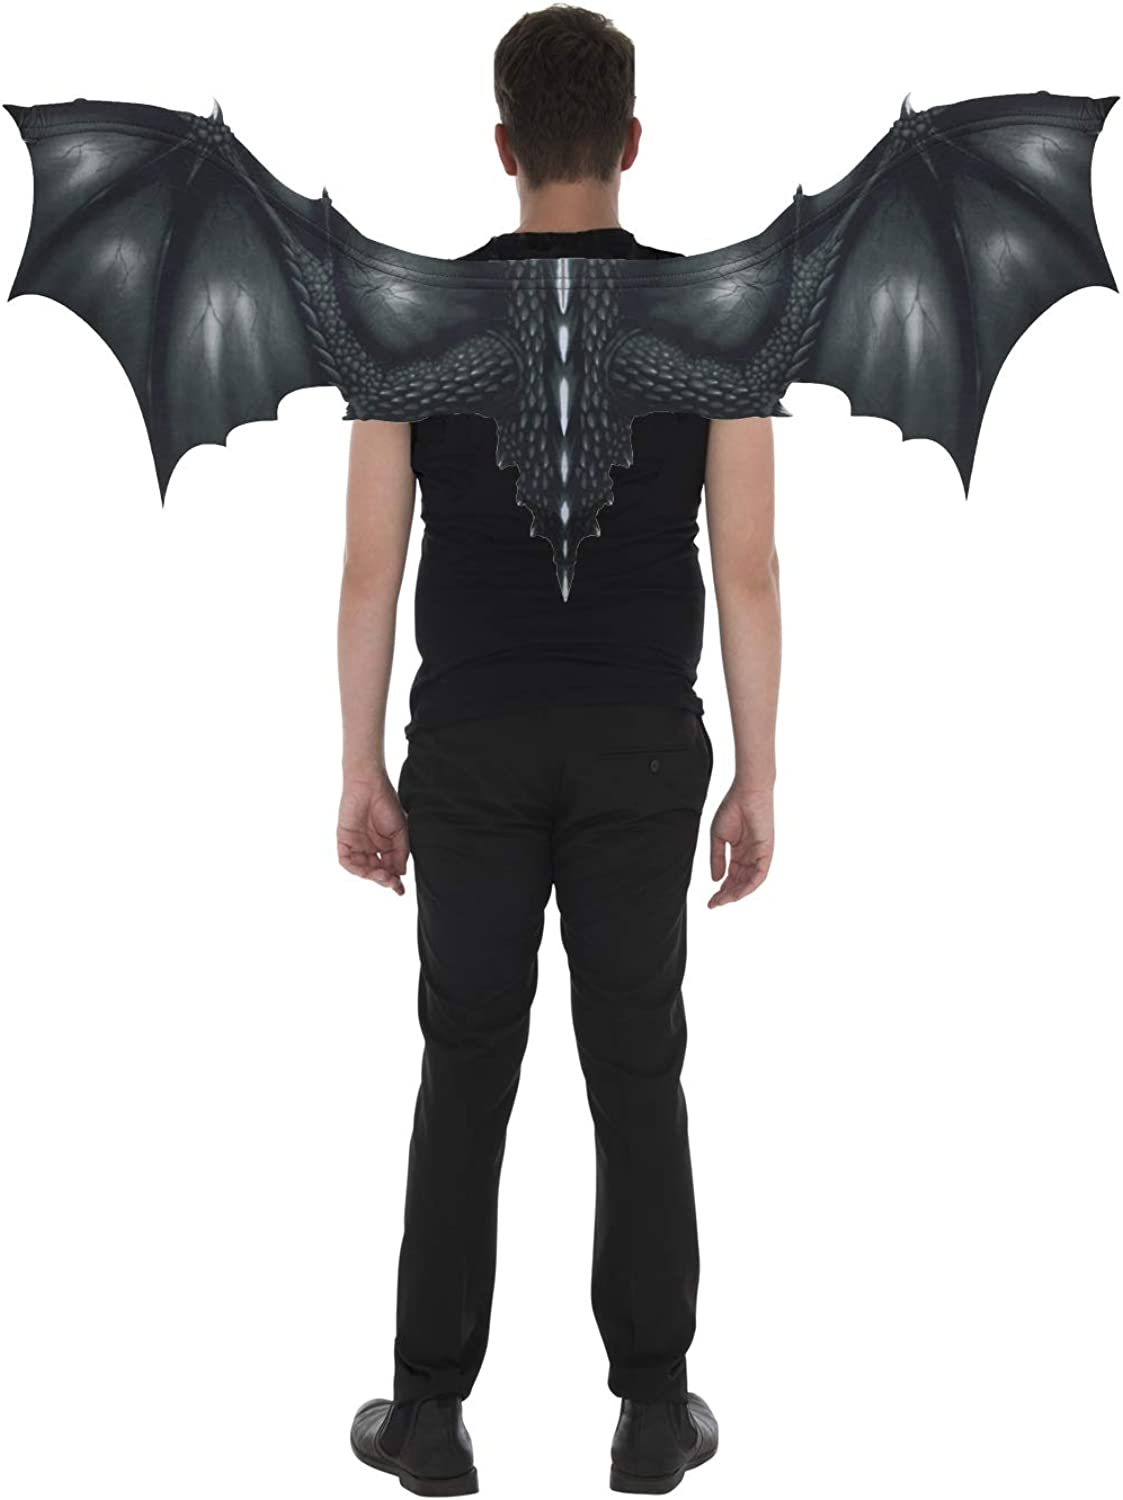 Great for Halloween Zac/'s Alter Ego Fancy Dress Very Large Dragon Wings